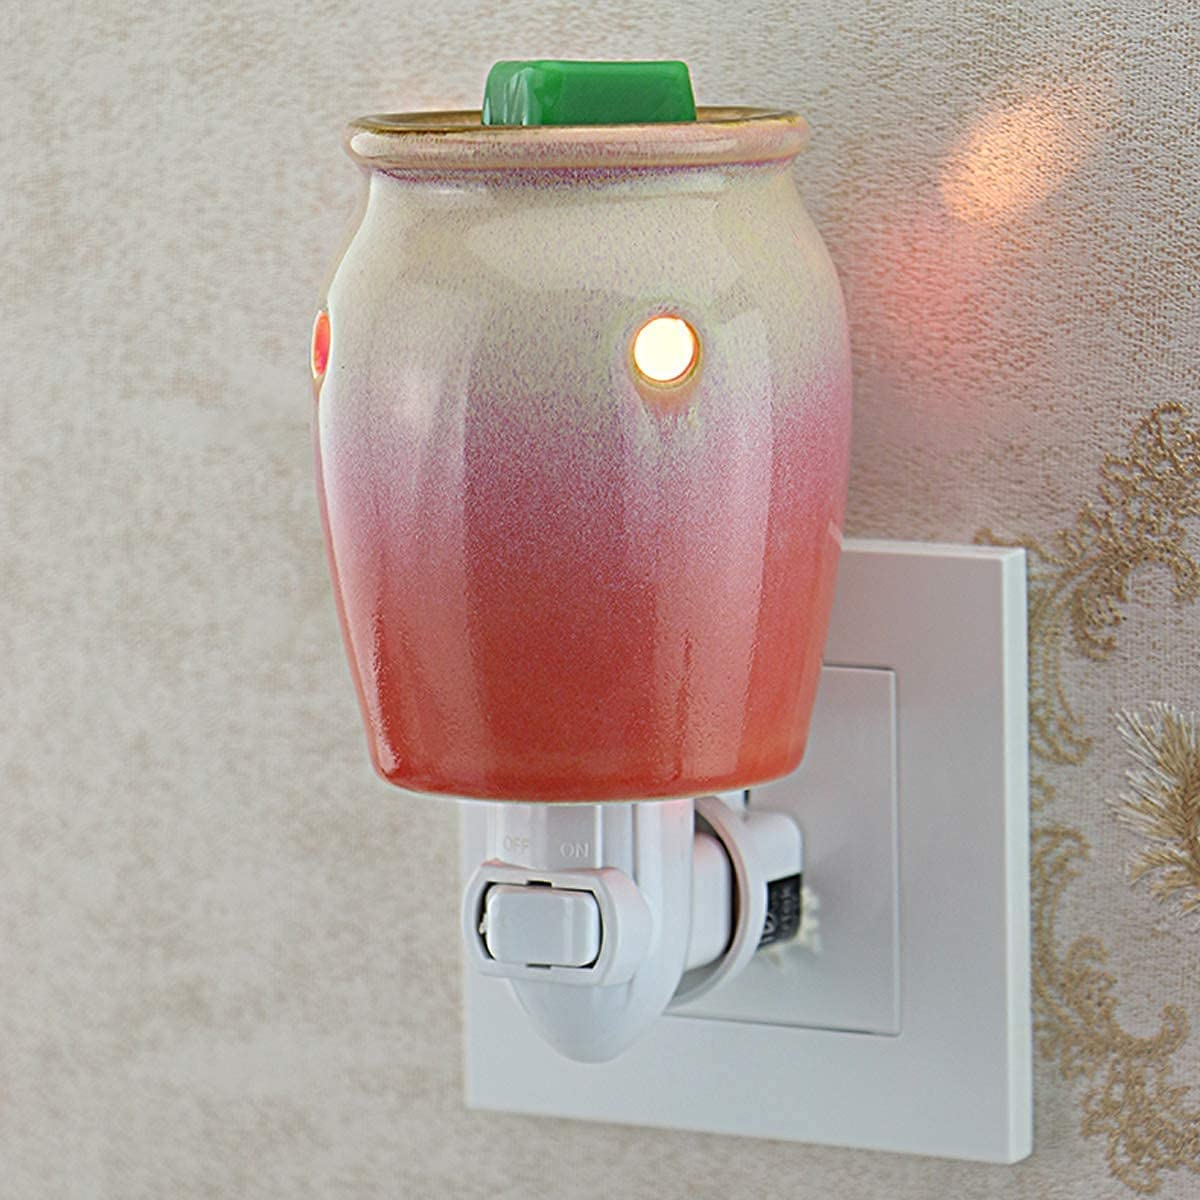 STAR MOON Scentsy Wax Warmer Plug in for Home Décor, Candle Wax Warmer, No Flame, with One More Bulb, Blossom